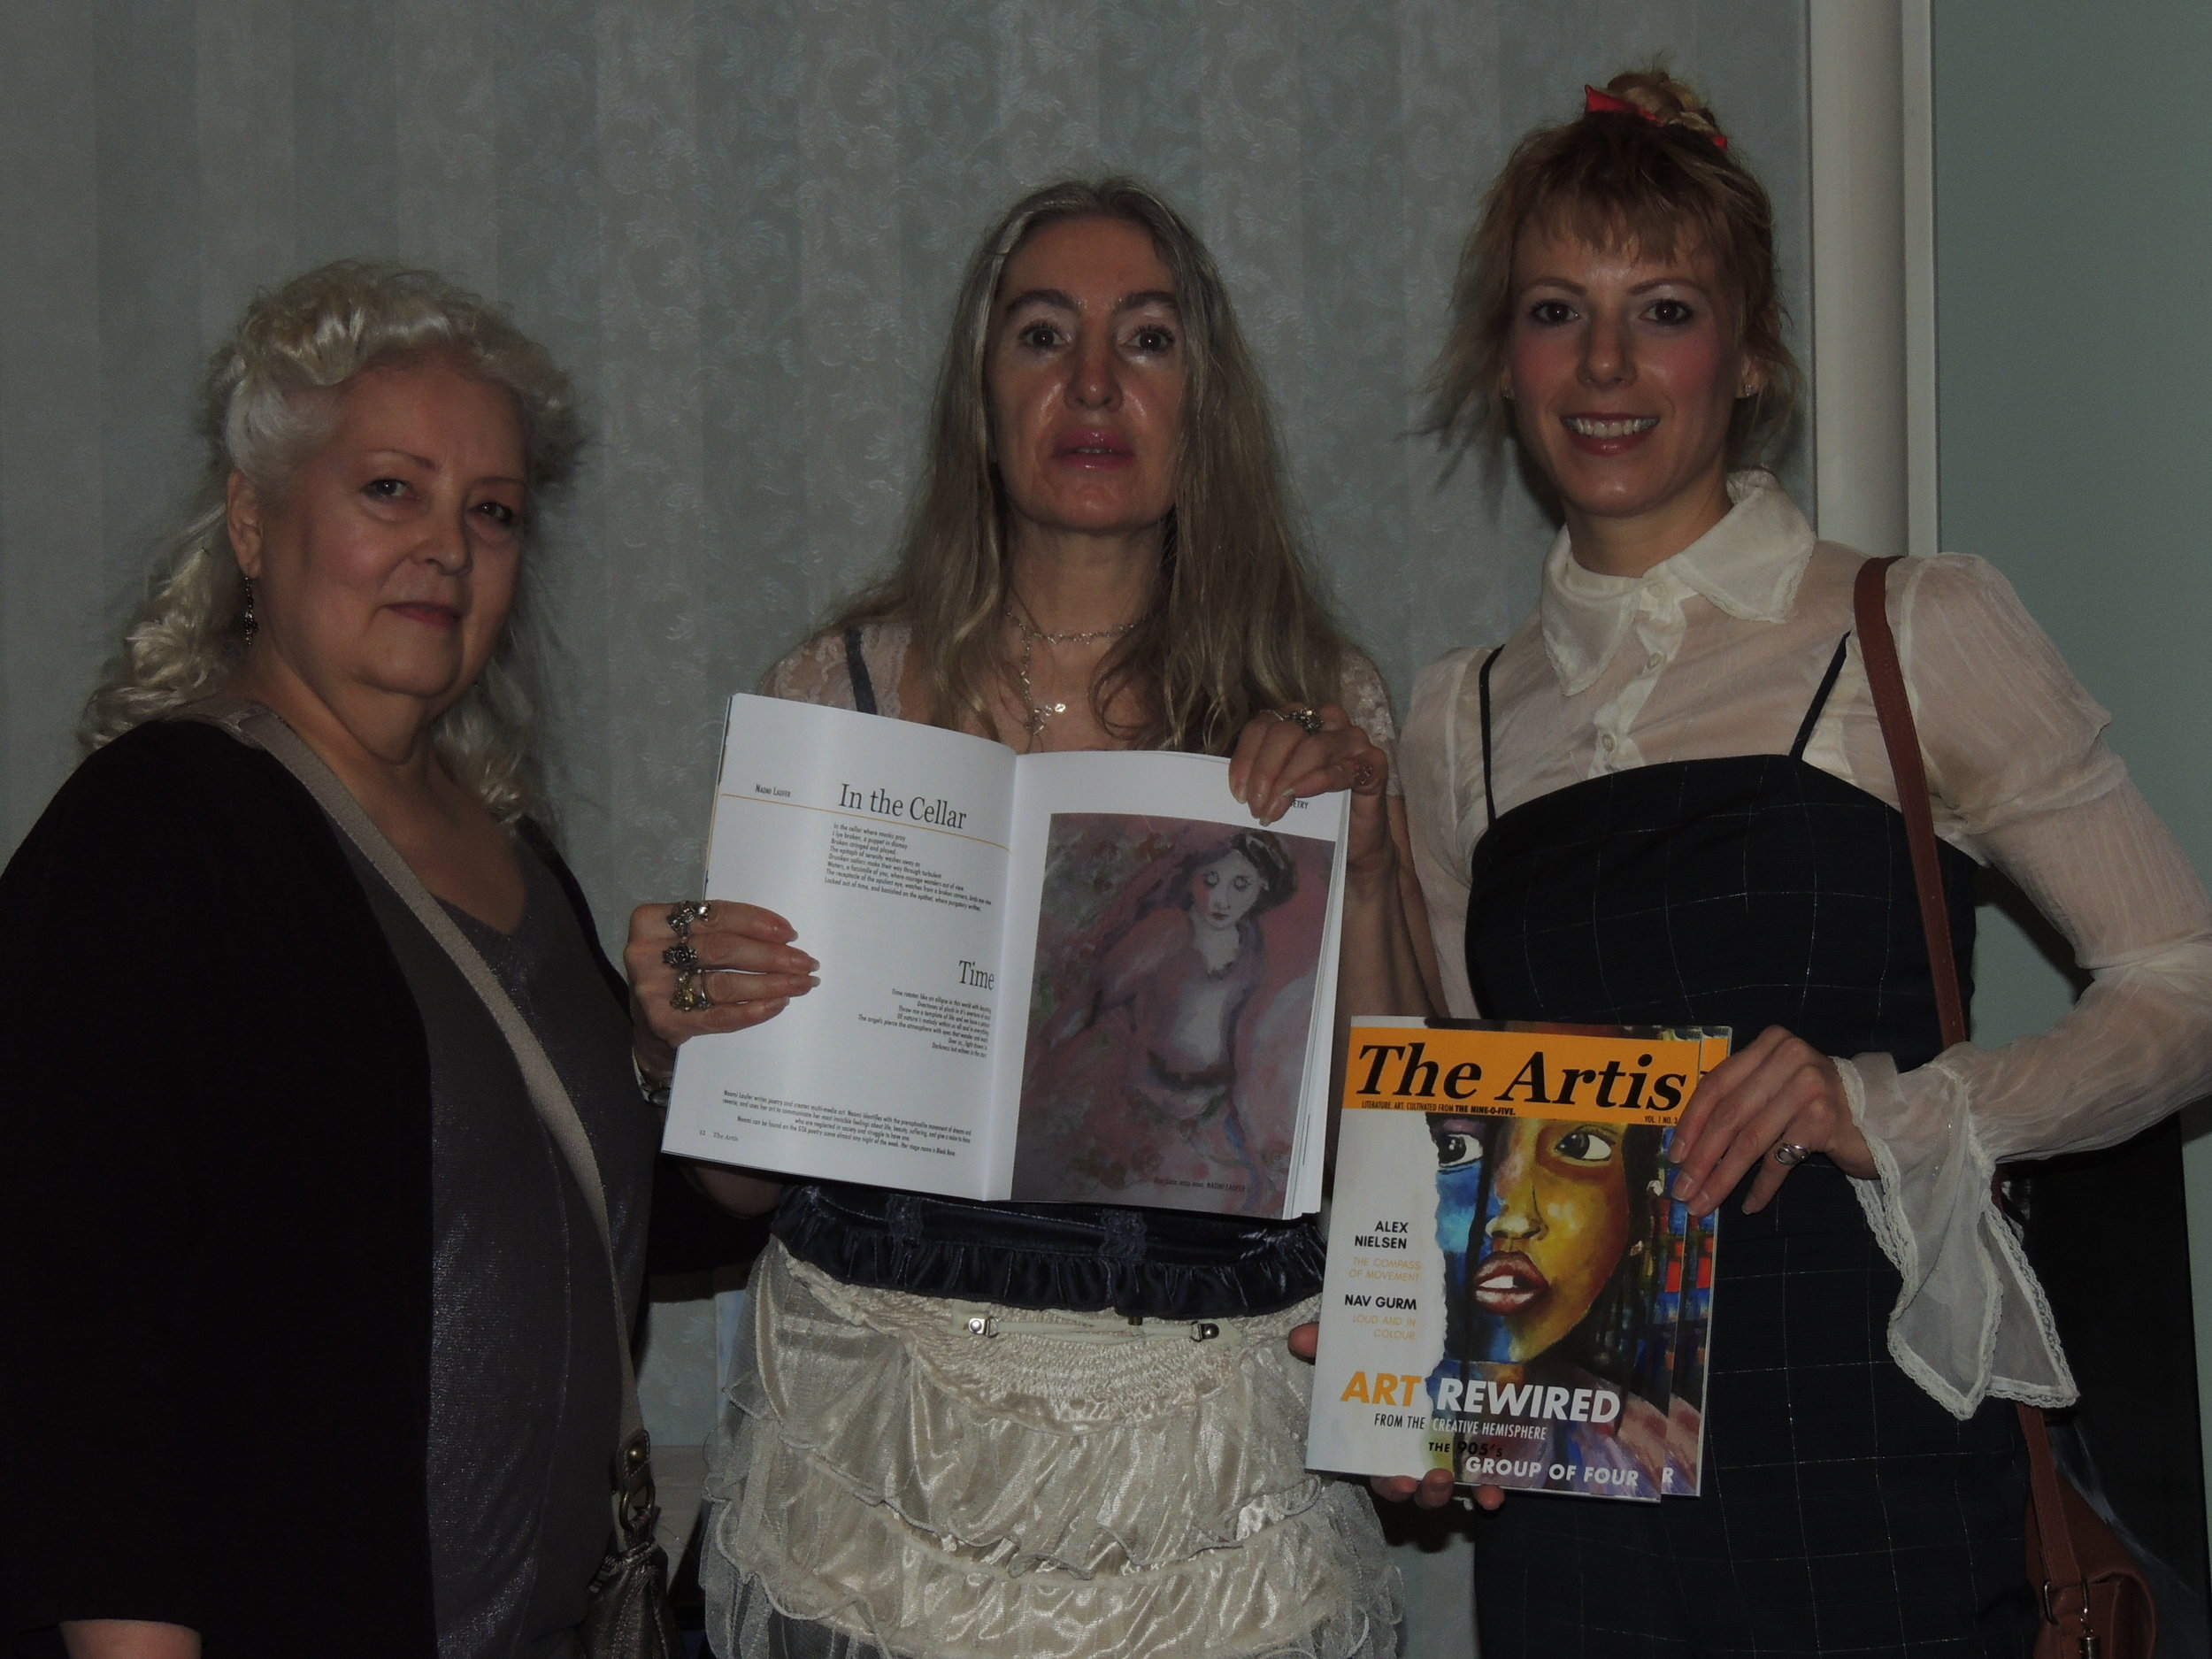 The Artis 3  contributing artist Naomi Laufer (centre) shows off her art, with fellow artist Susan & Editor in Chief Ivy Reiss. Photo by Mira Louis.